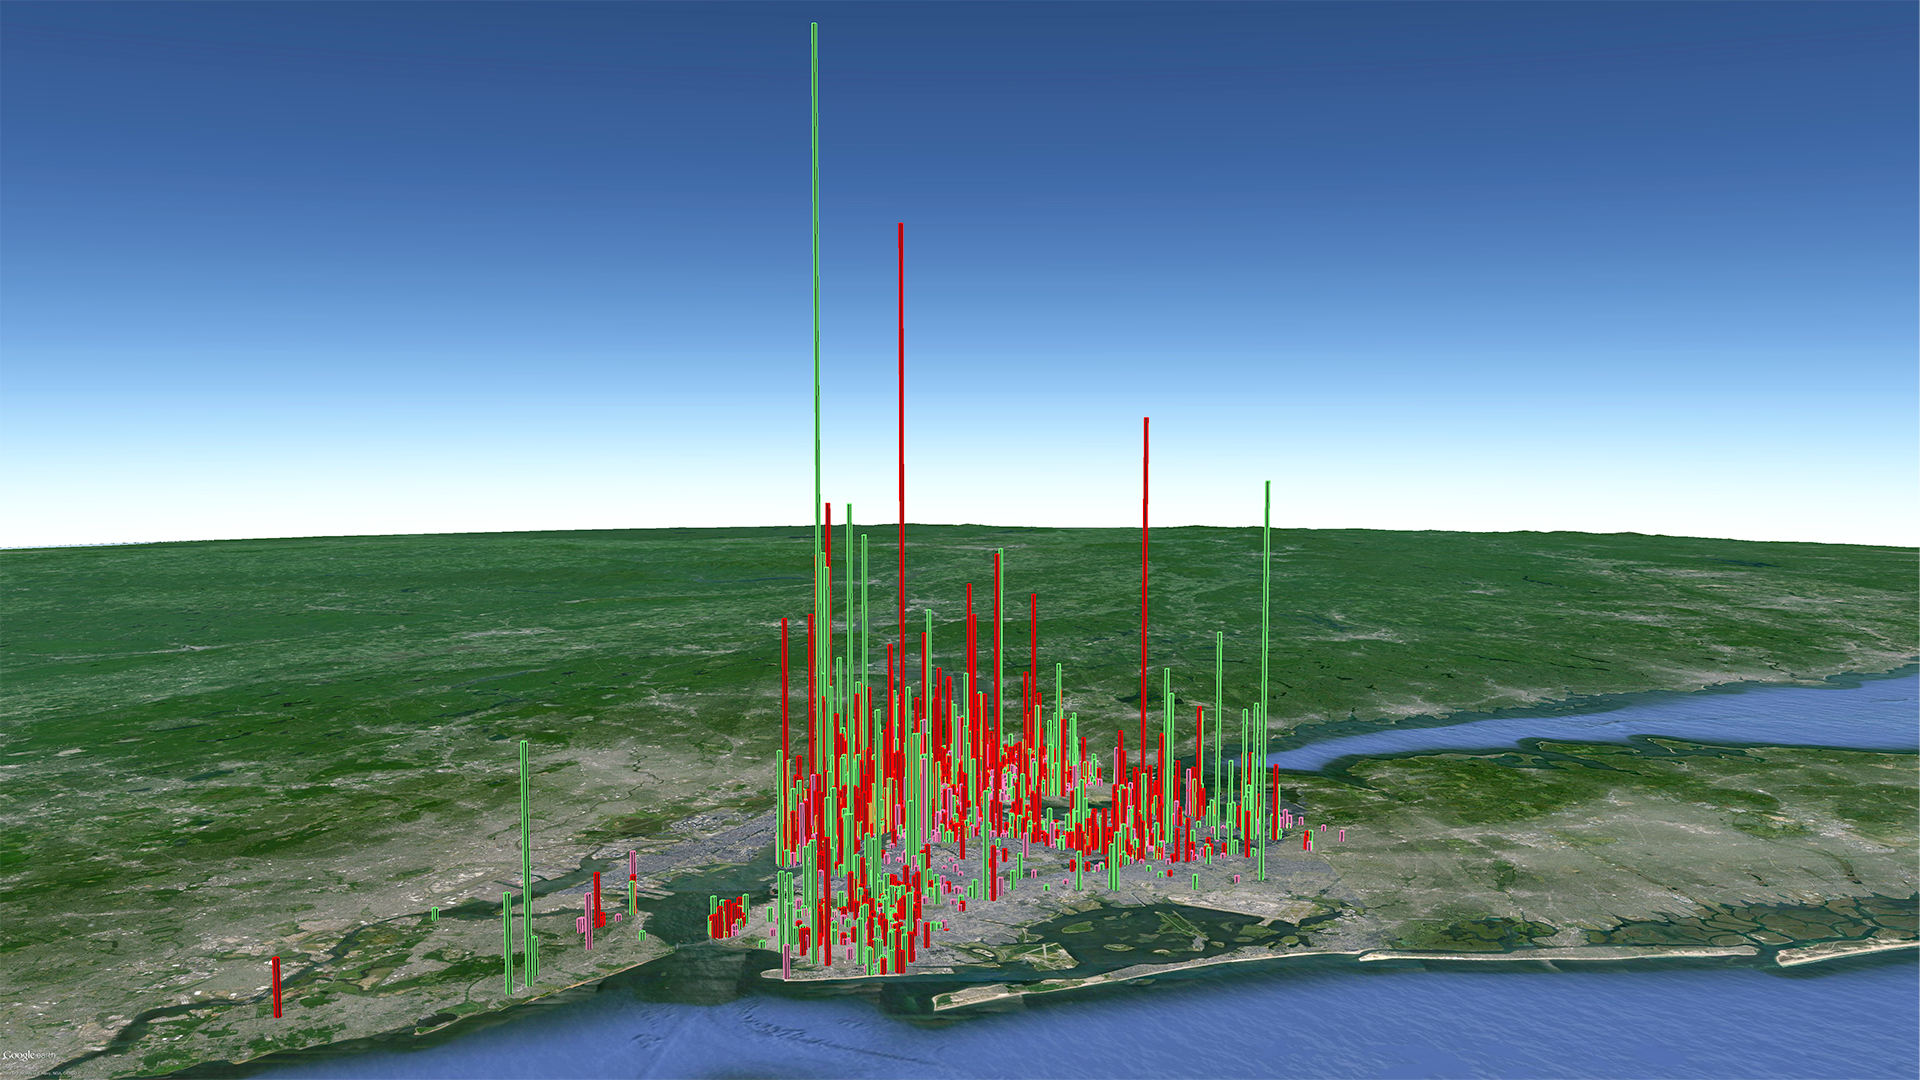 Volume of air saturated by particles by buildings in New York City